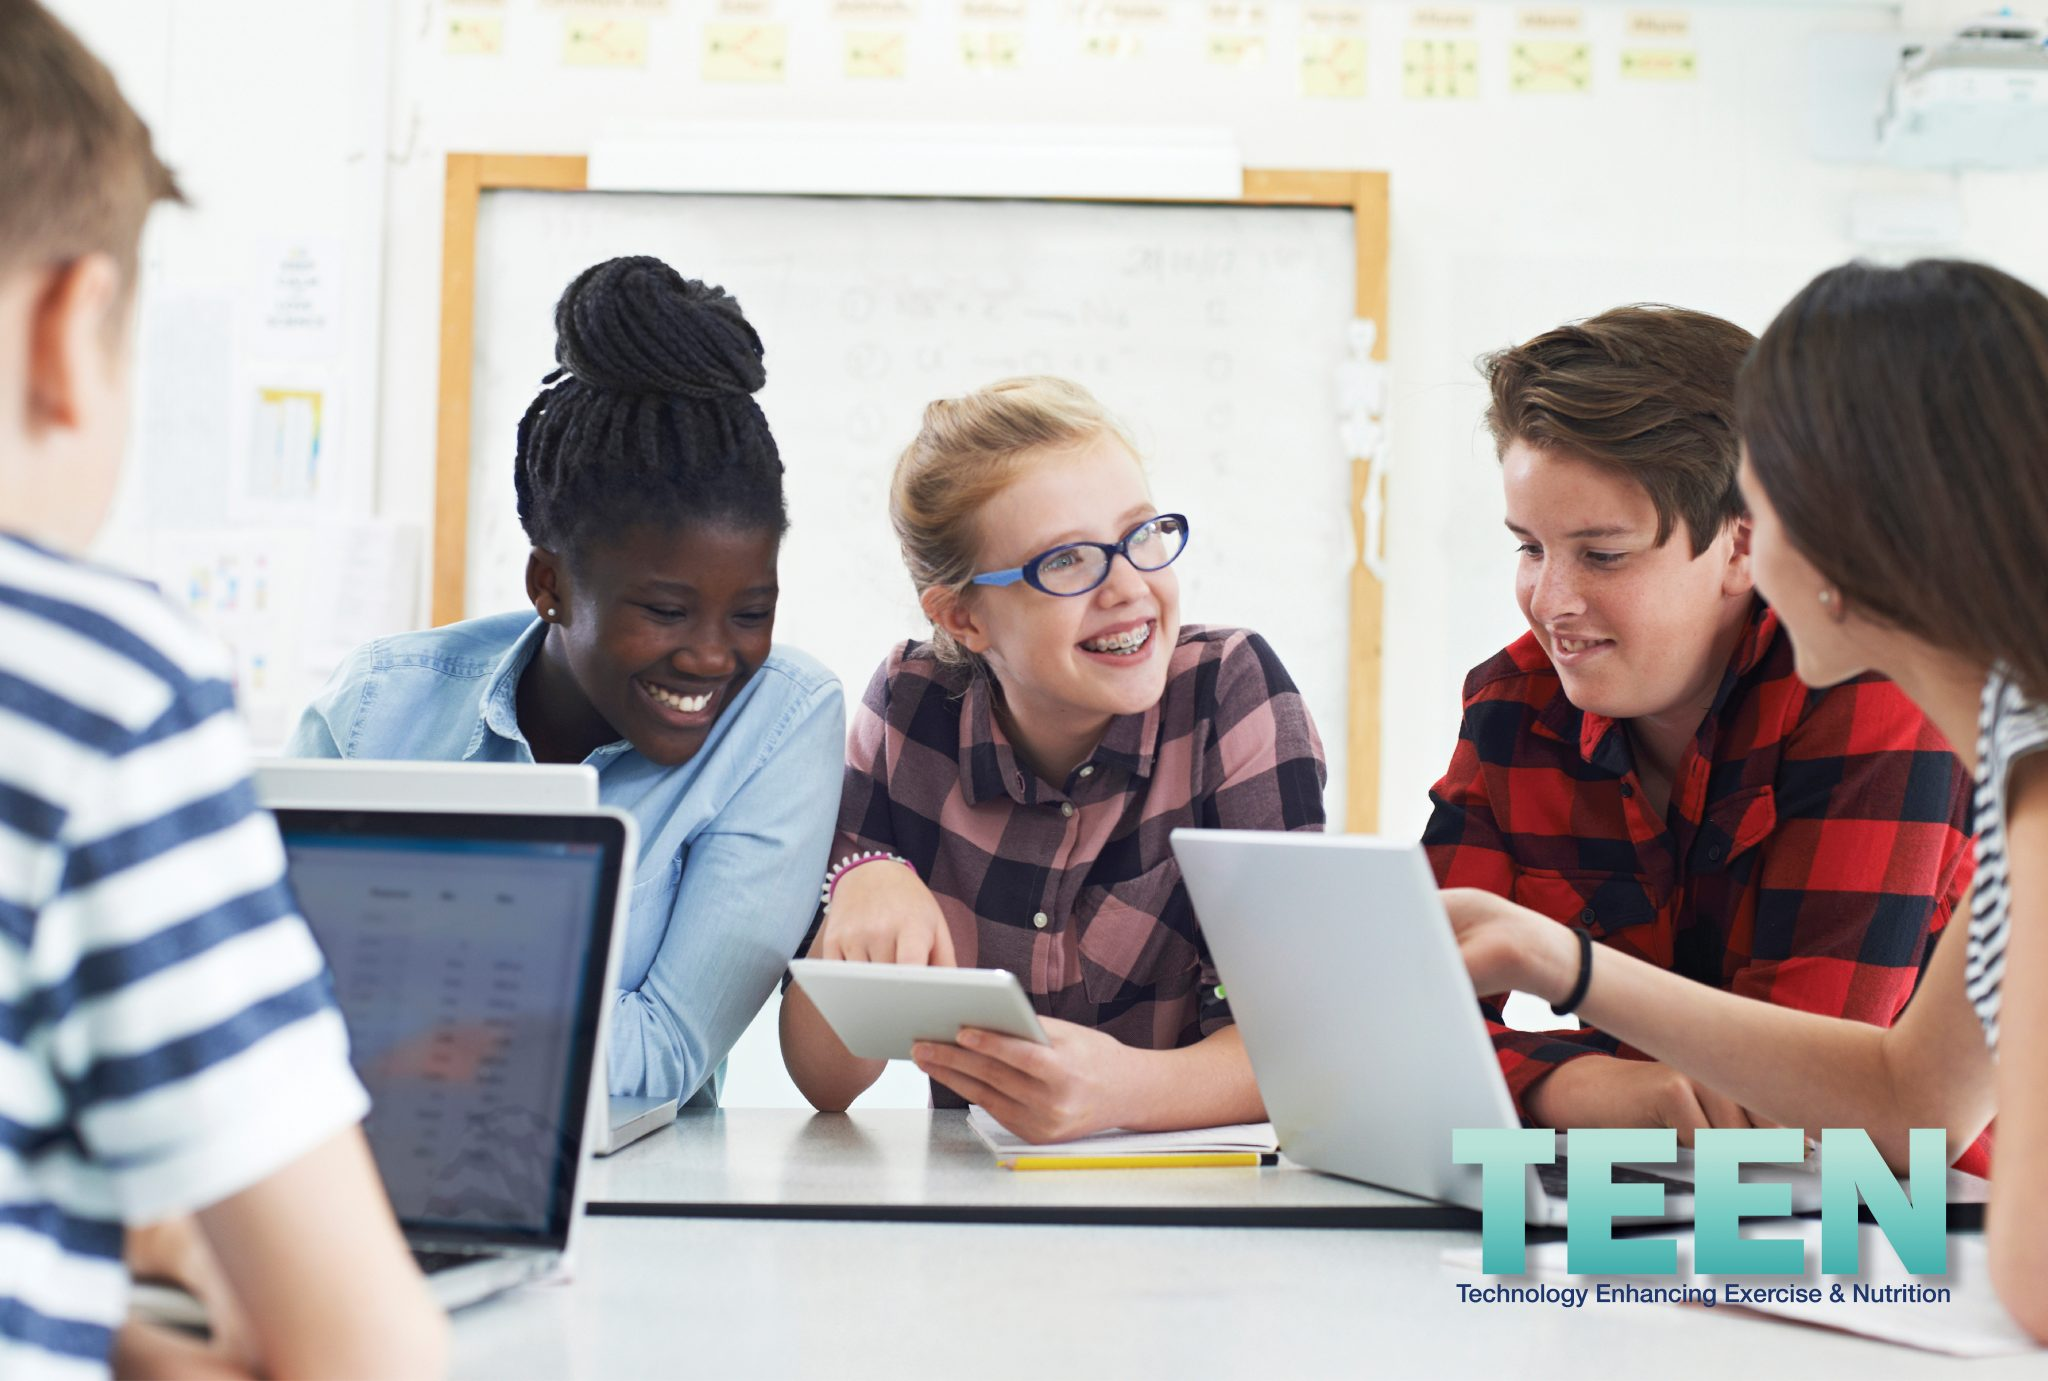 Group of diverse middle school kids have a discussion while looking at computer screens.